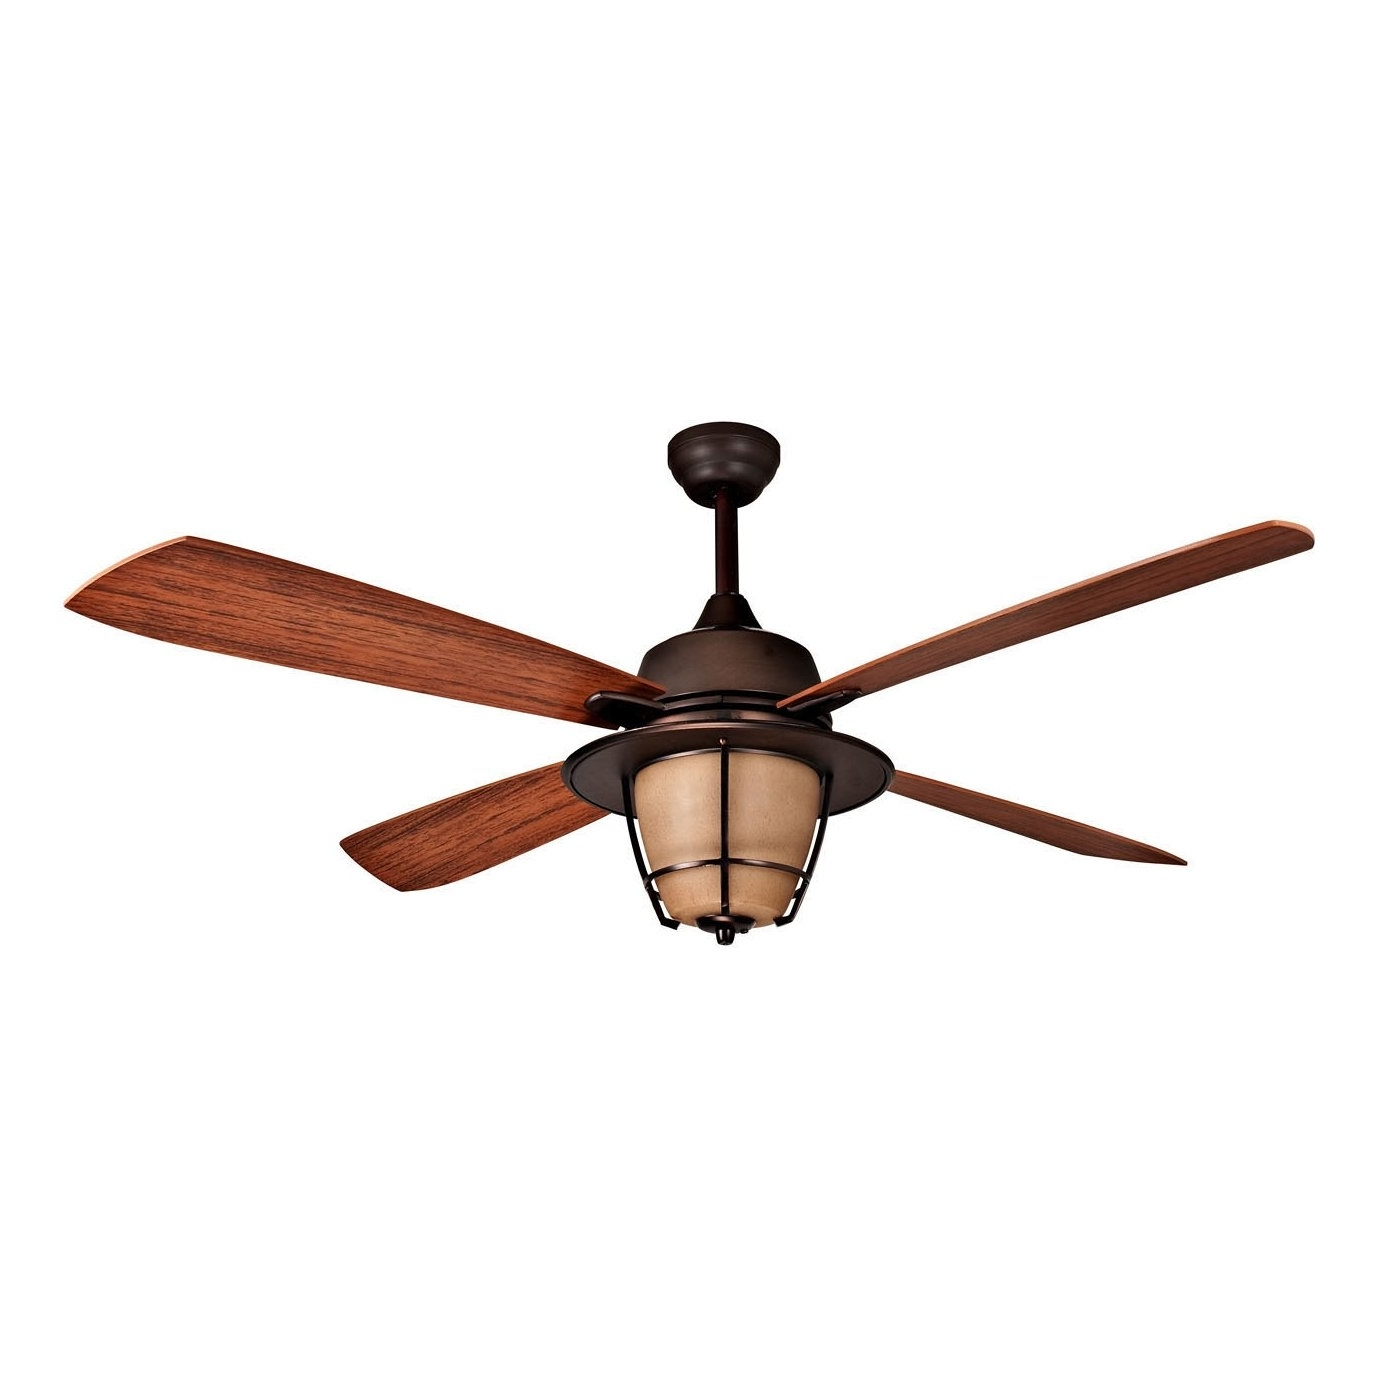 Contemporary Outdoor Ceiling Fans In Recent Ceiling Lights : Archaic Exterior Ceiling Fans , Outdoor Ceiling Fans (View 16 of 20)